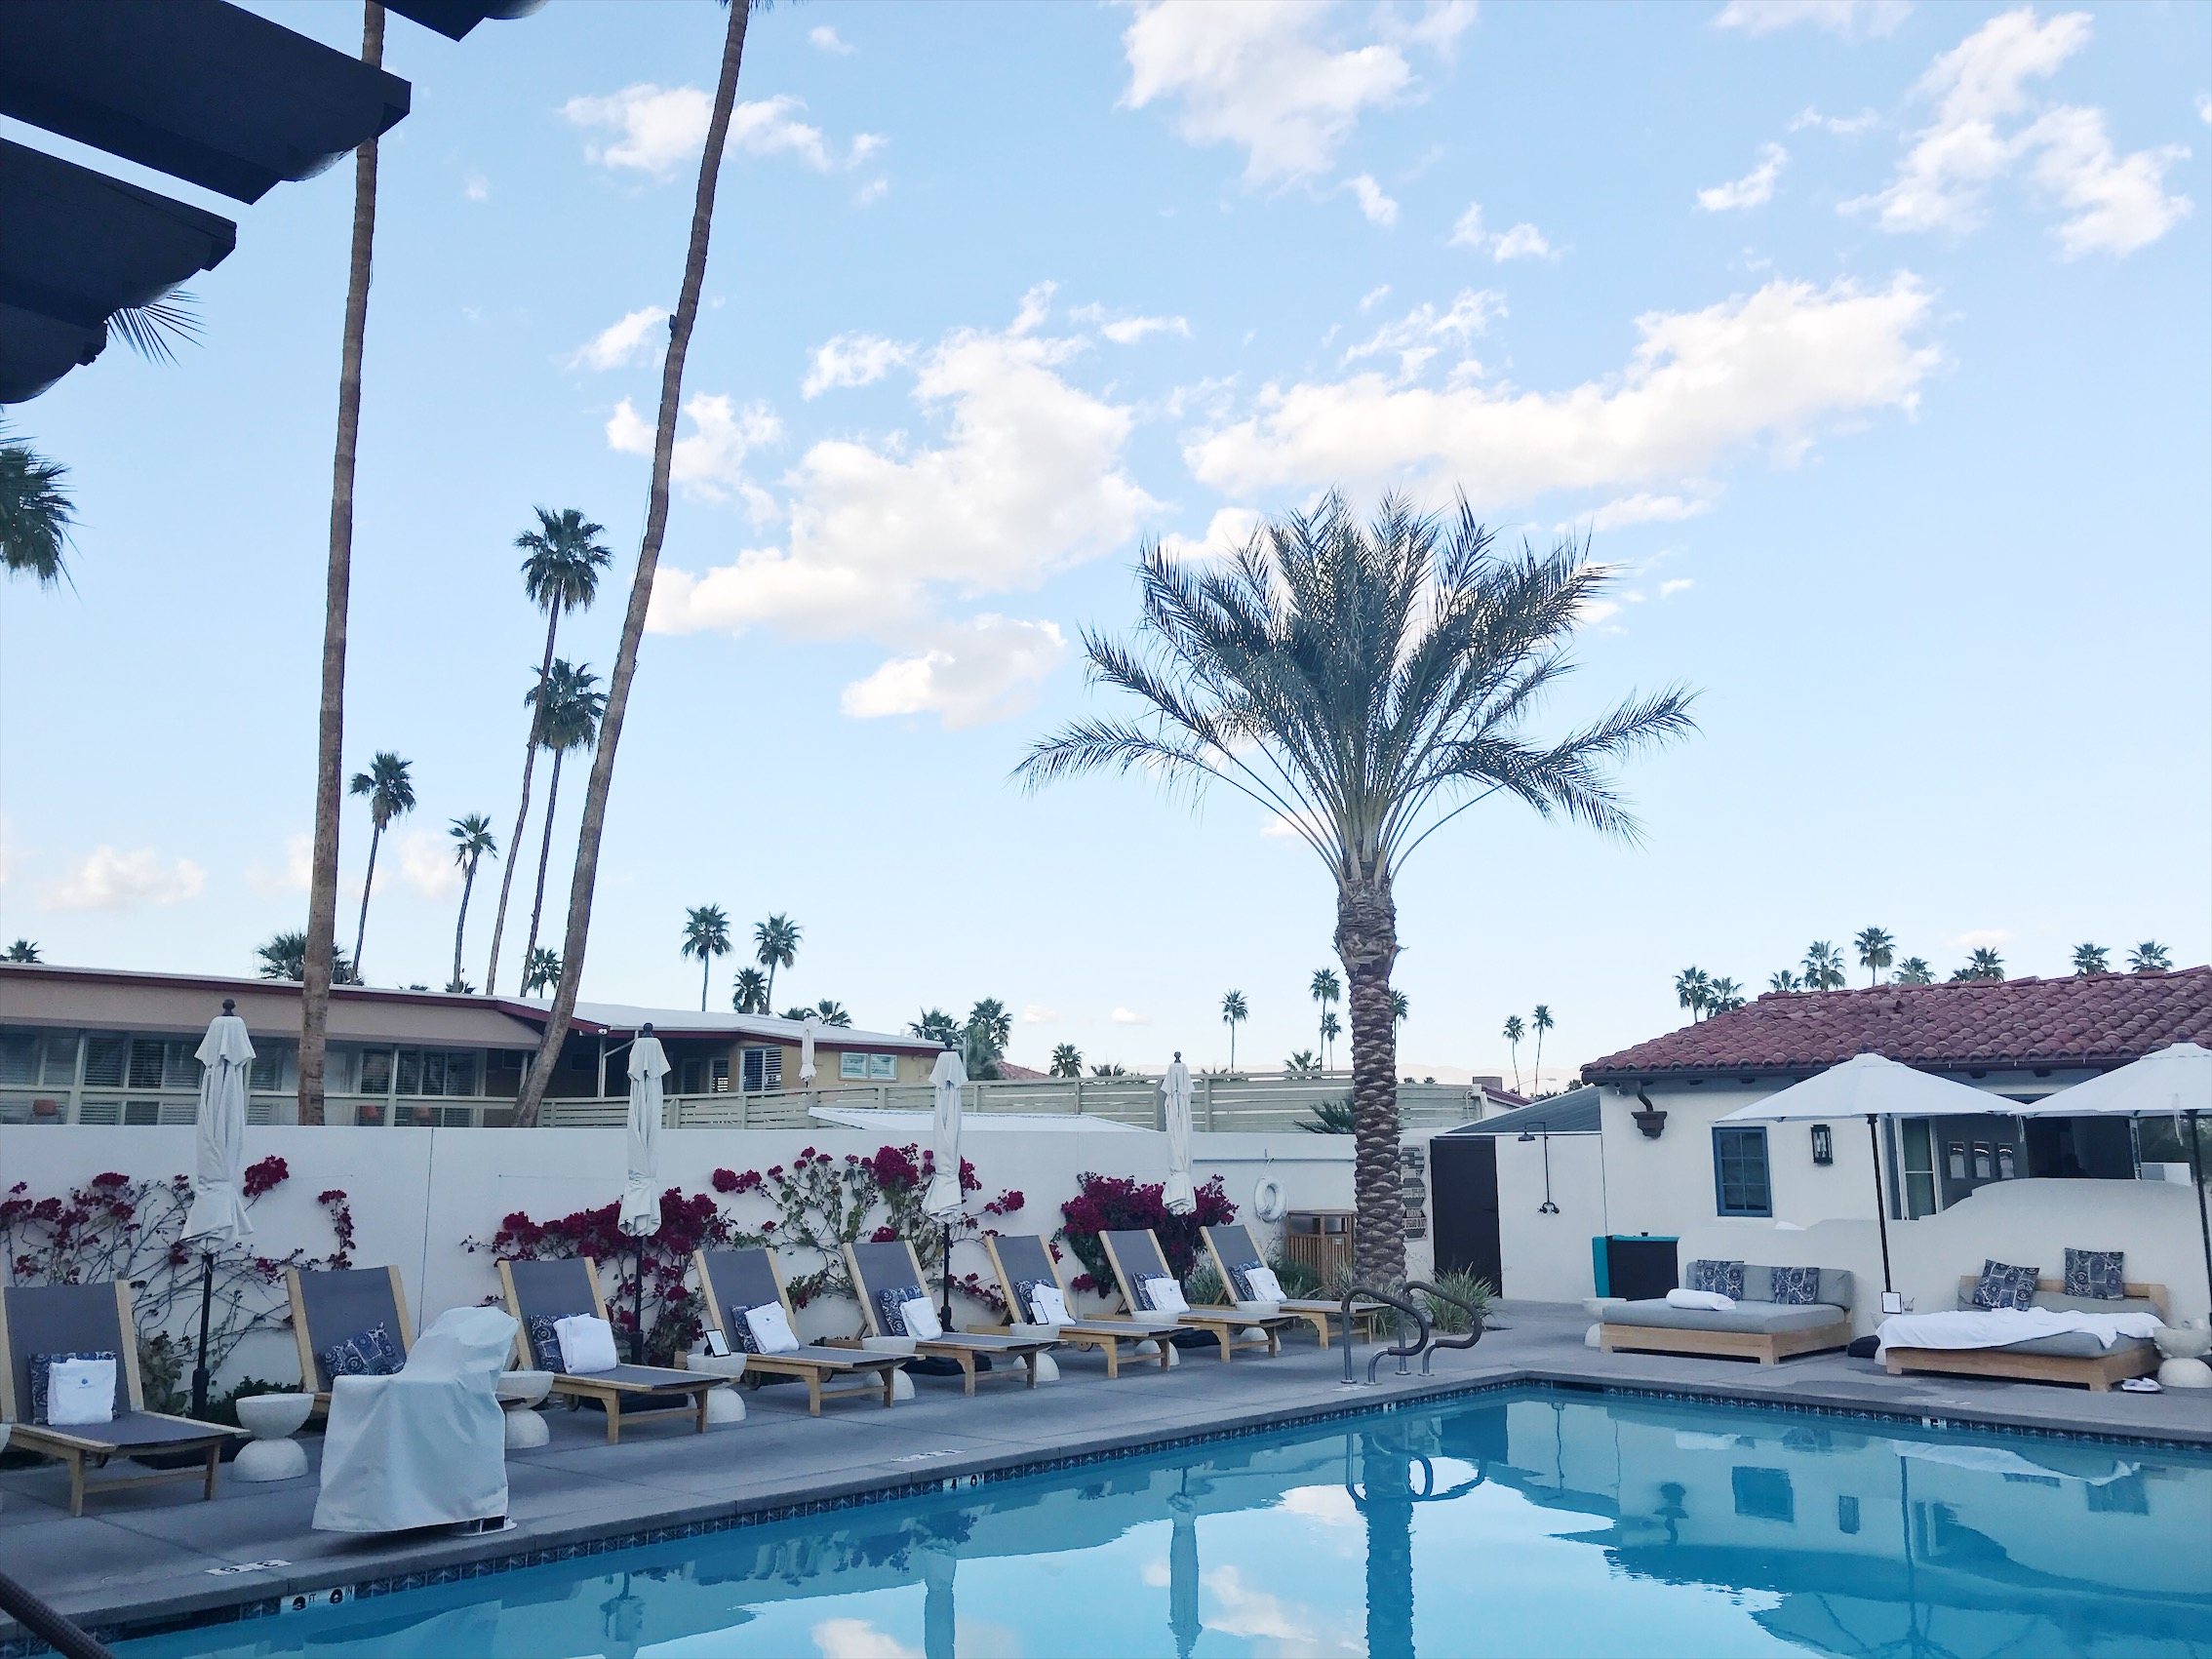 What to do in Palm Springs